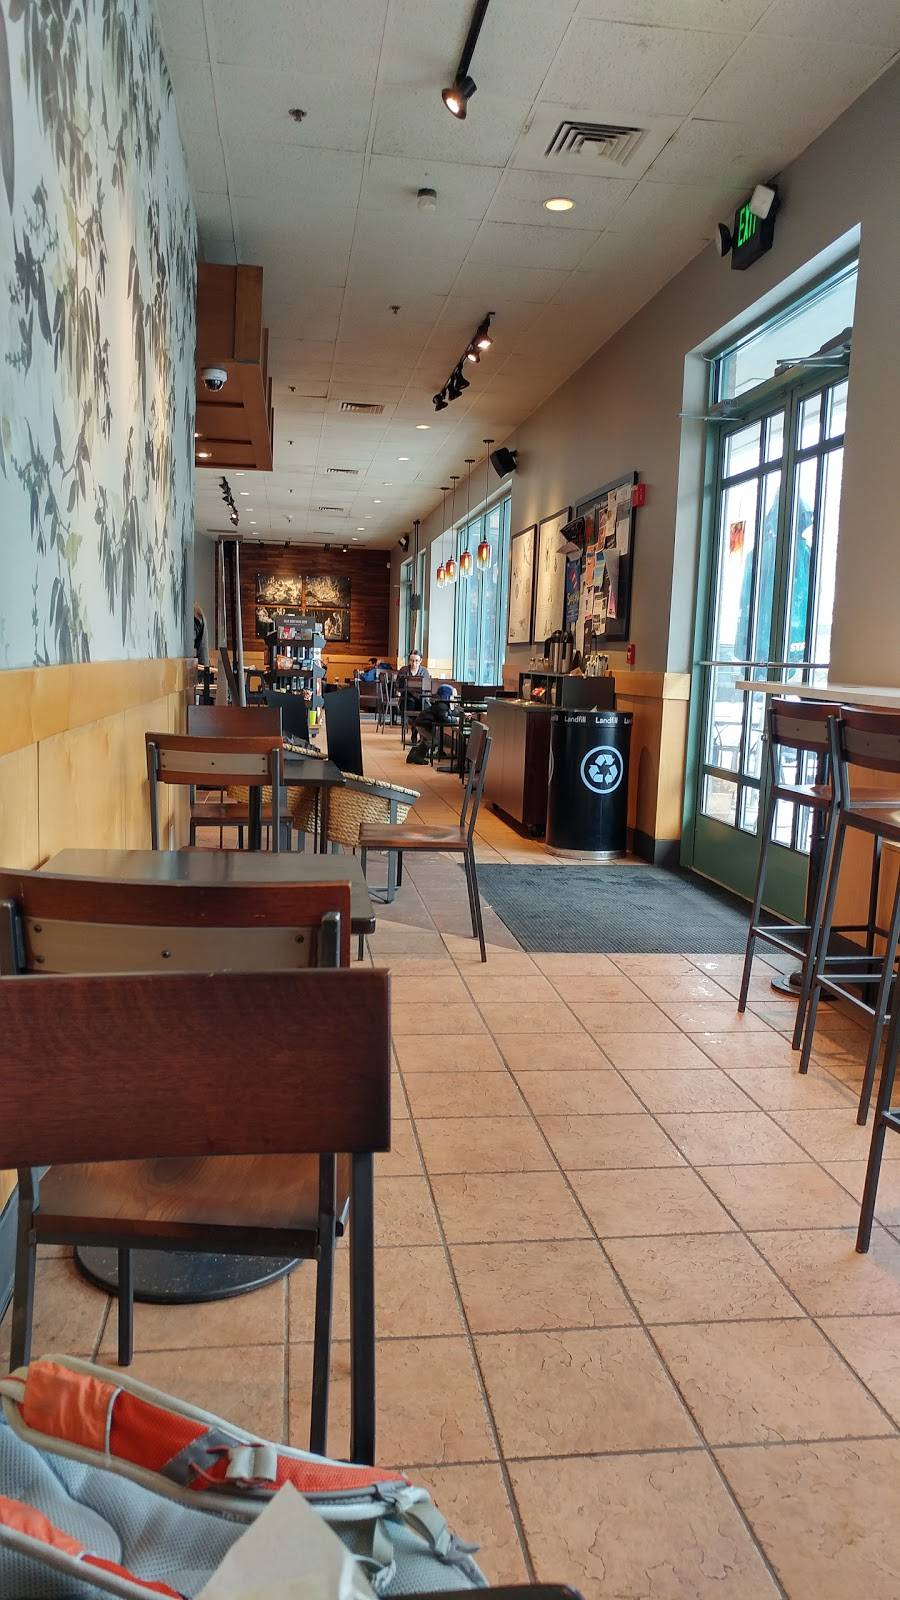 Starbucks | cafe | 21 River Rd Suite 100, Wilton, CT 06897, USA | 2037610408 OR +1 203-761-0408